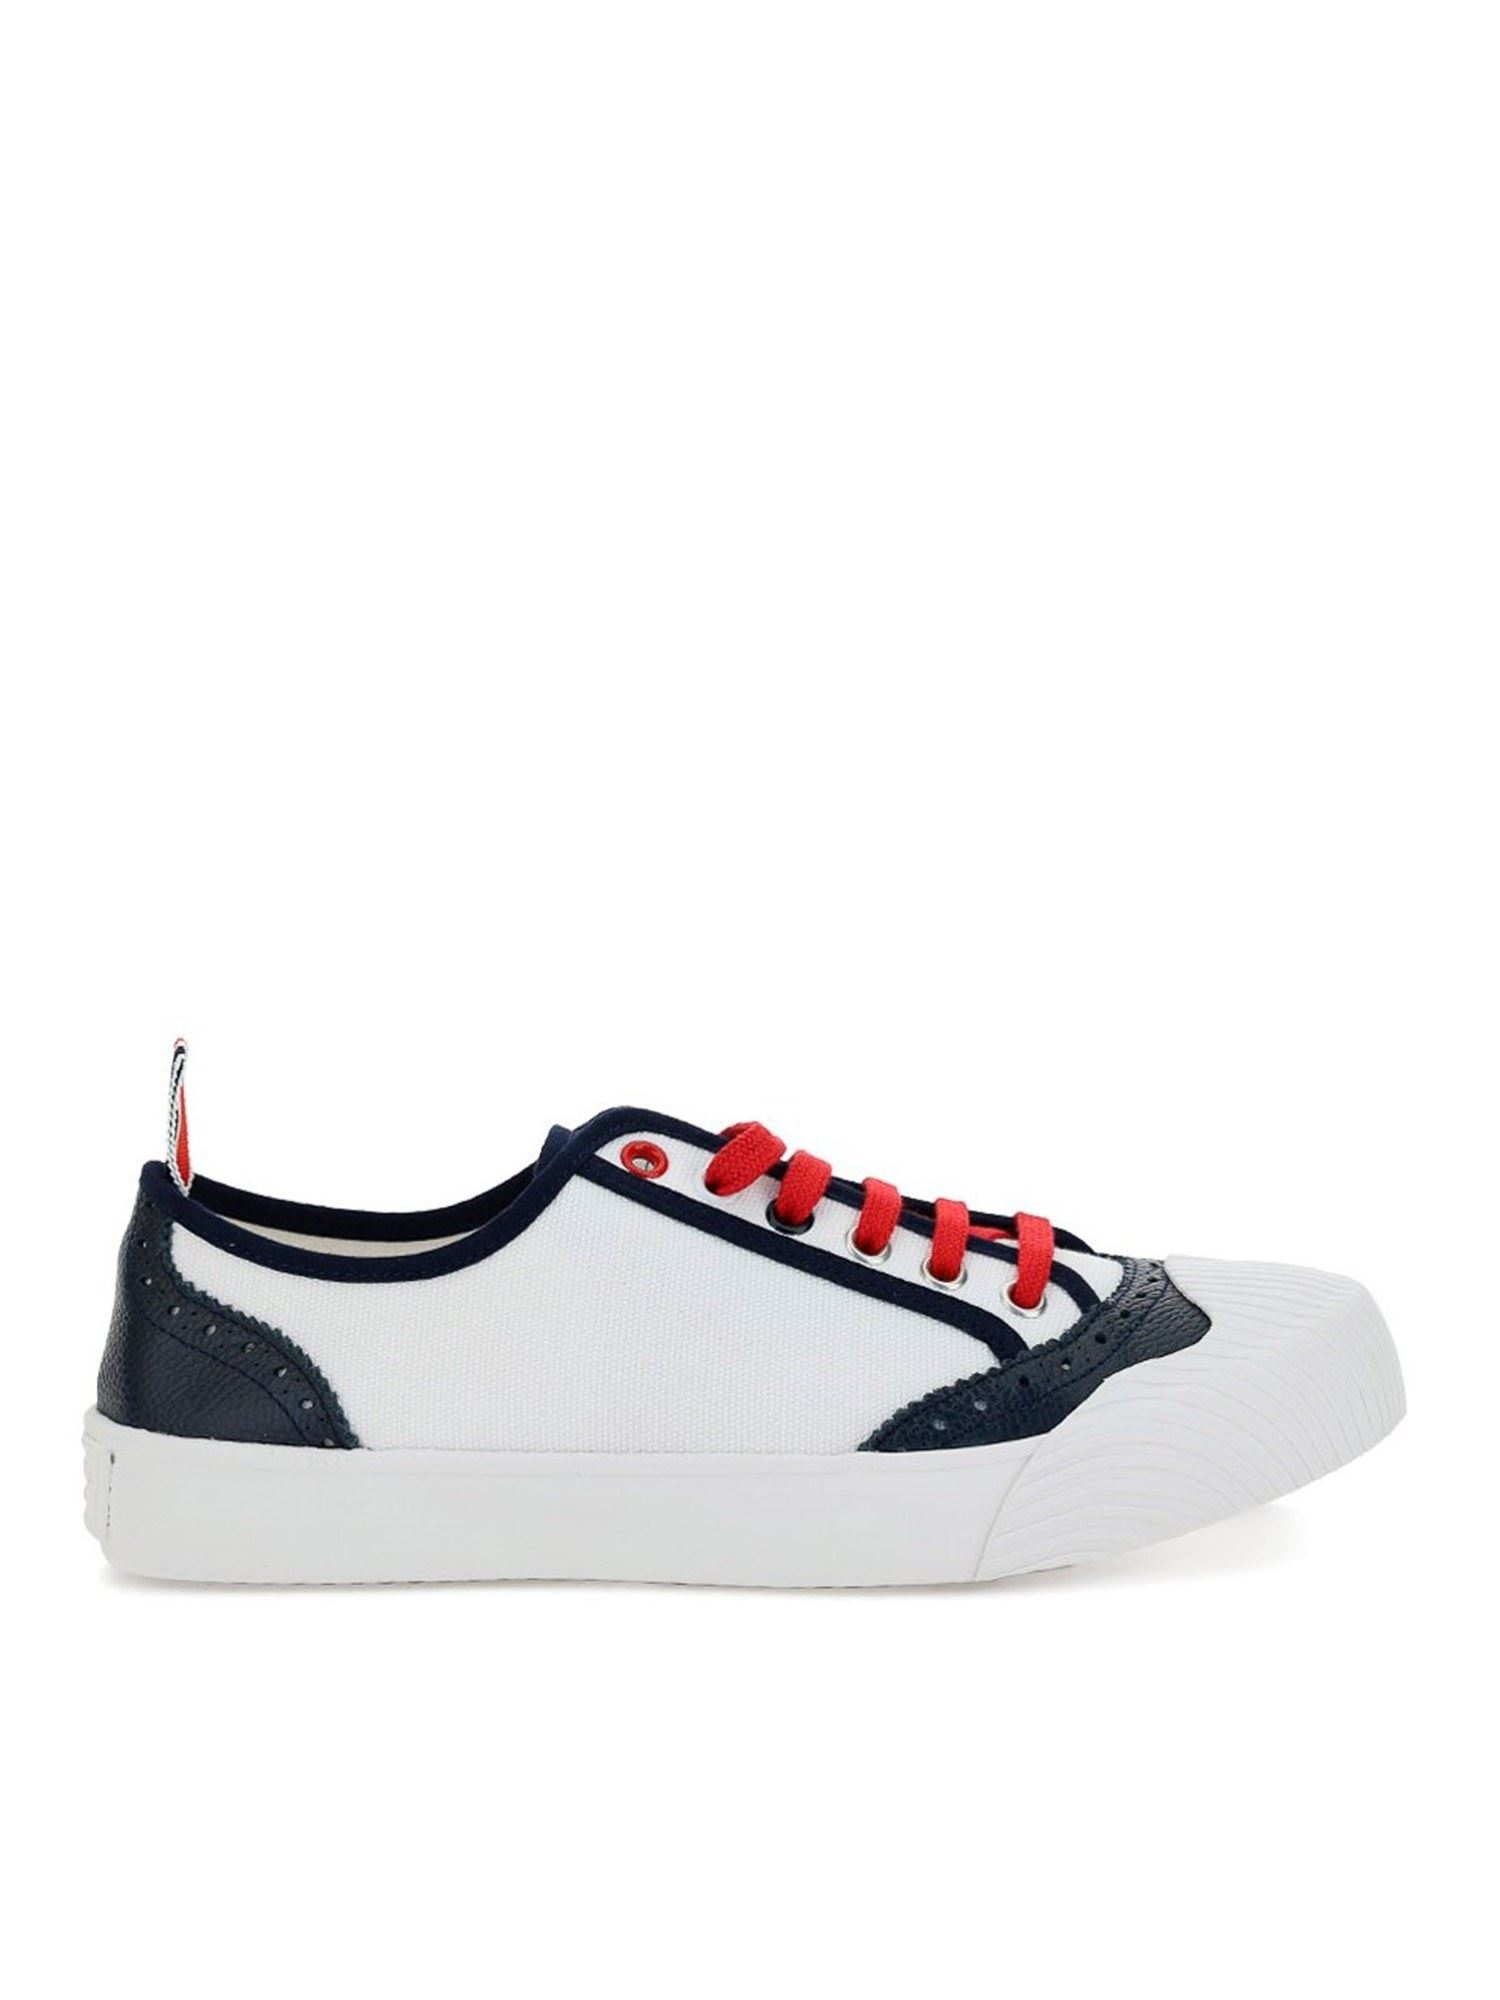 THOM BROWNE CONTRASTING PIPING SNEAKERS IN WHITE